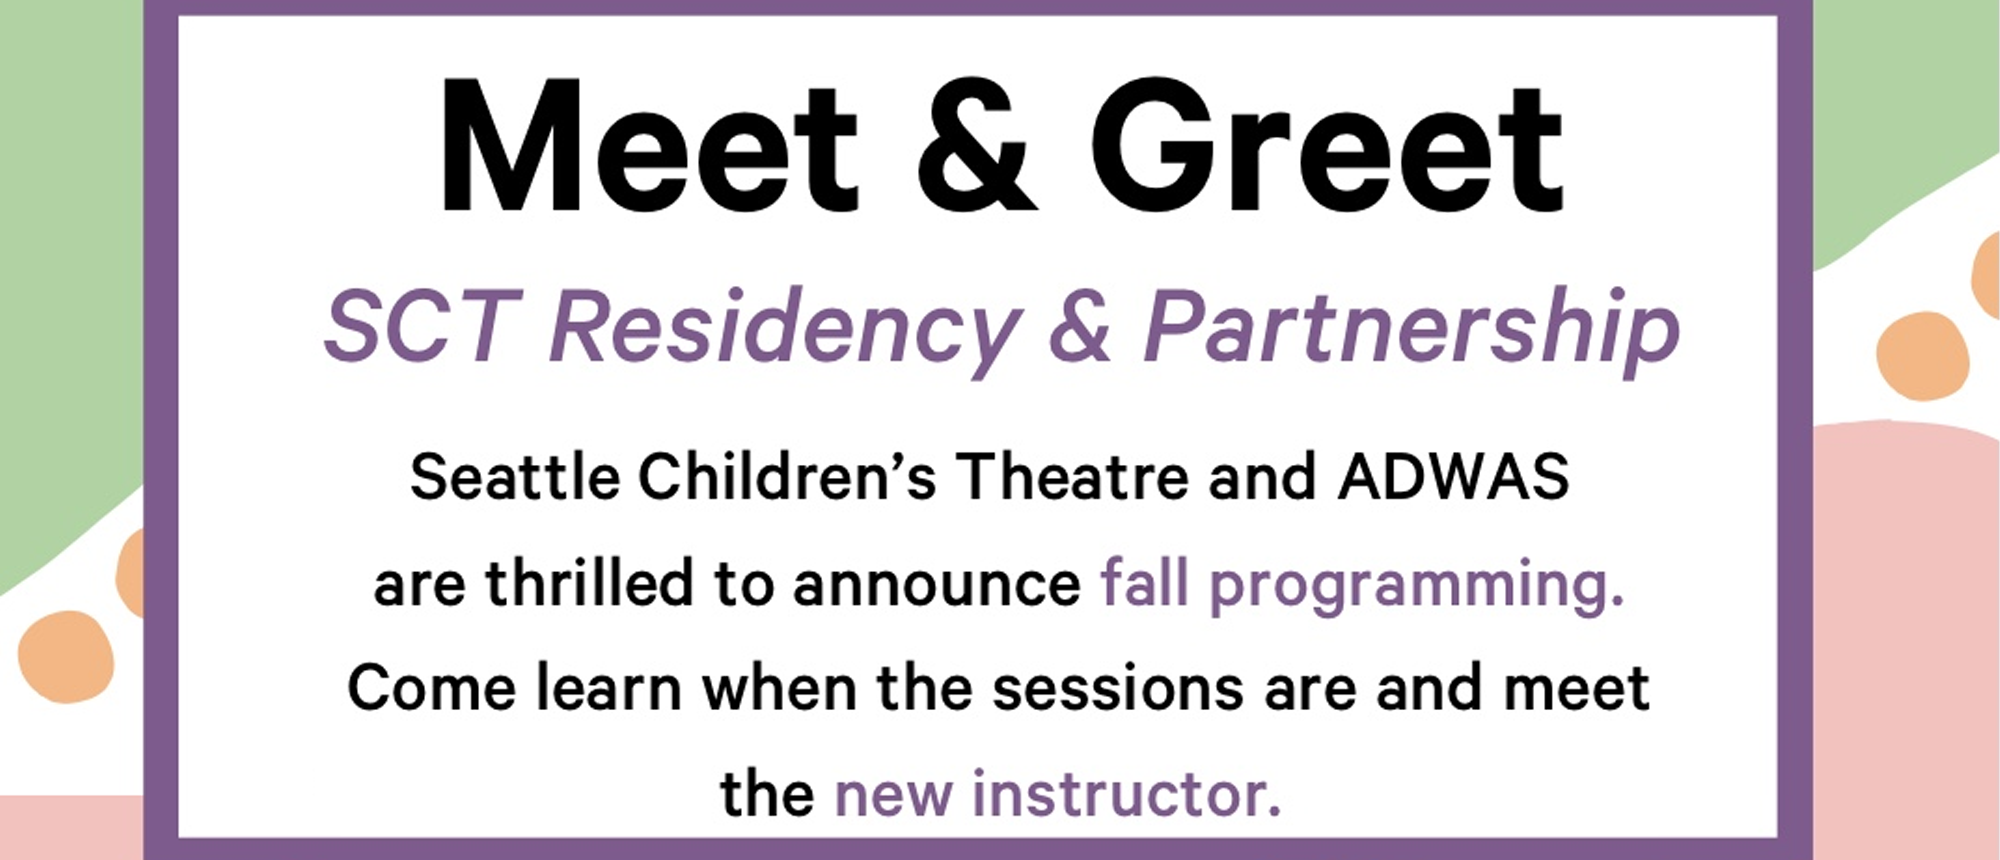 """Colorful various shapes of blue, pink, green, and orange border. On white background at the top in bold black text says """"Meet & Greet"""". Text underneath says """"SCT Residency & Partnership"""". / Seattle Children's Theatre and ADWAS are thrilled to announce fall programming. Come learn when the sessions are and meet the new instructor. / When: Thurs, Sept 23rd, 2021 / Time: 5:30pm-6:30pm / Where: Zoom / To register, email Nancy Edney at childrensadvocate@adwas.org. ADWAS and SCT logos are shown."""